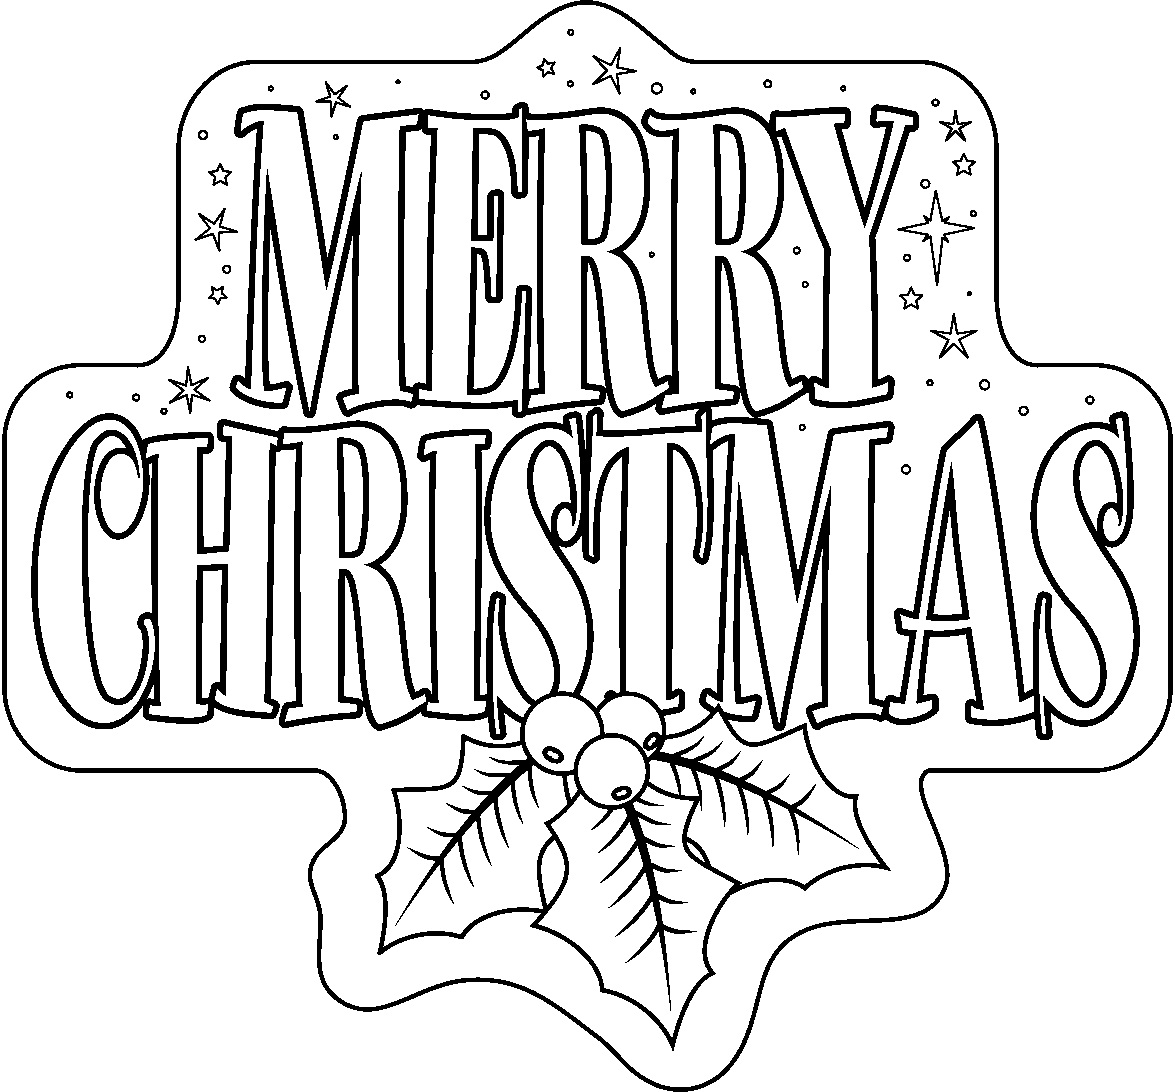 Christmas treats coloring pages Christmas chimneys coloring pages